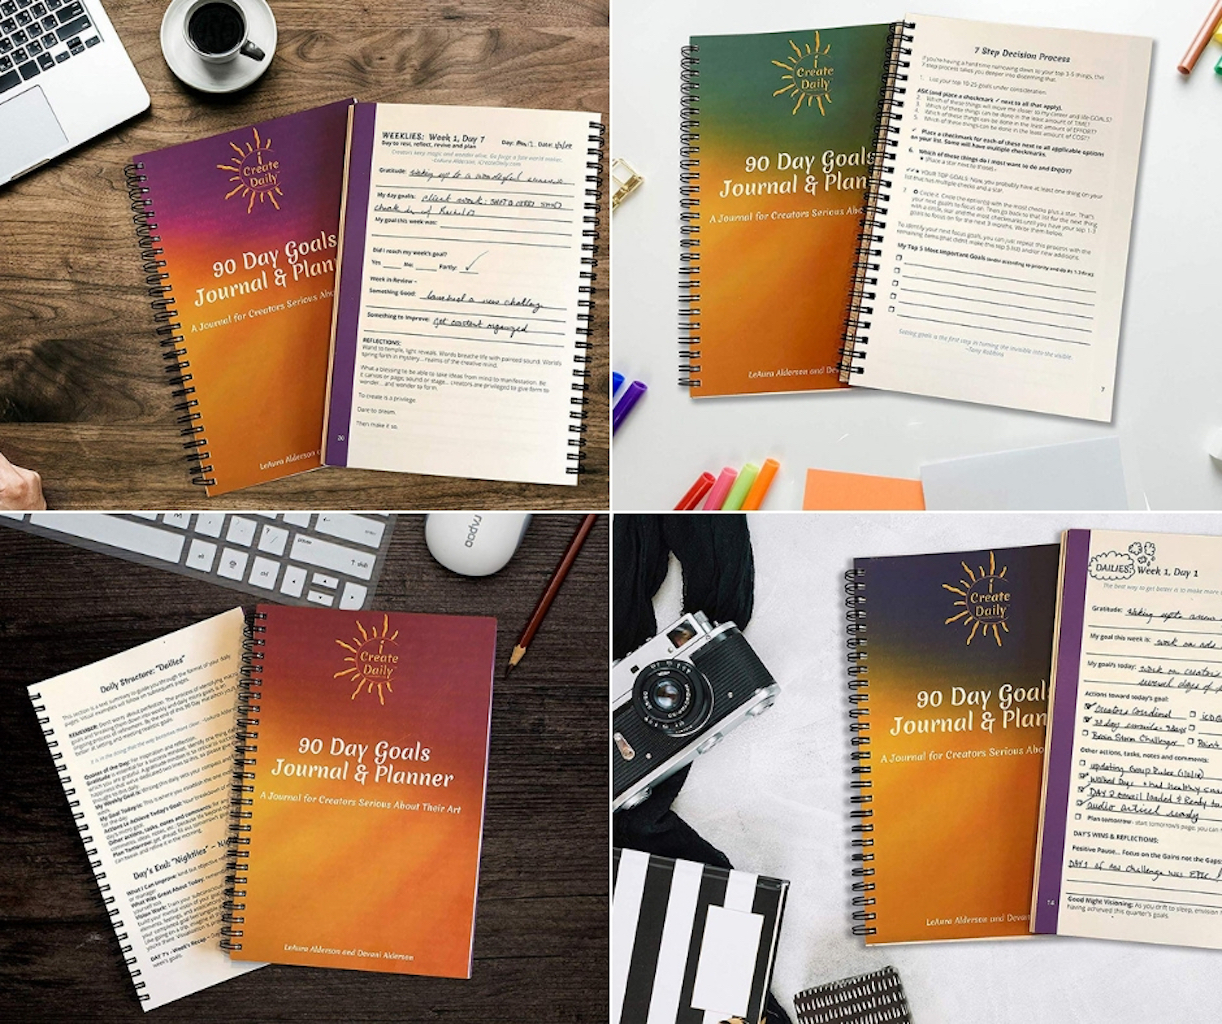 The iCreateDaily90 Day Goals Planner & Journal is your guide to daily doing that will get your goals done! #GoalJournal #GoalPlanner #BestSelf #90DayJournals #90DayGoals #AchieveYourGoals